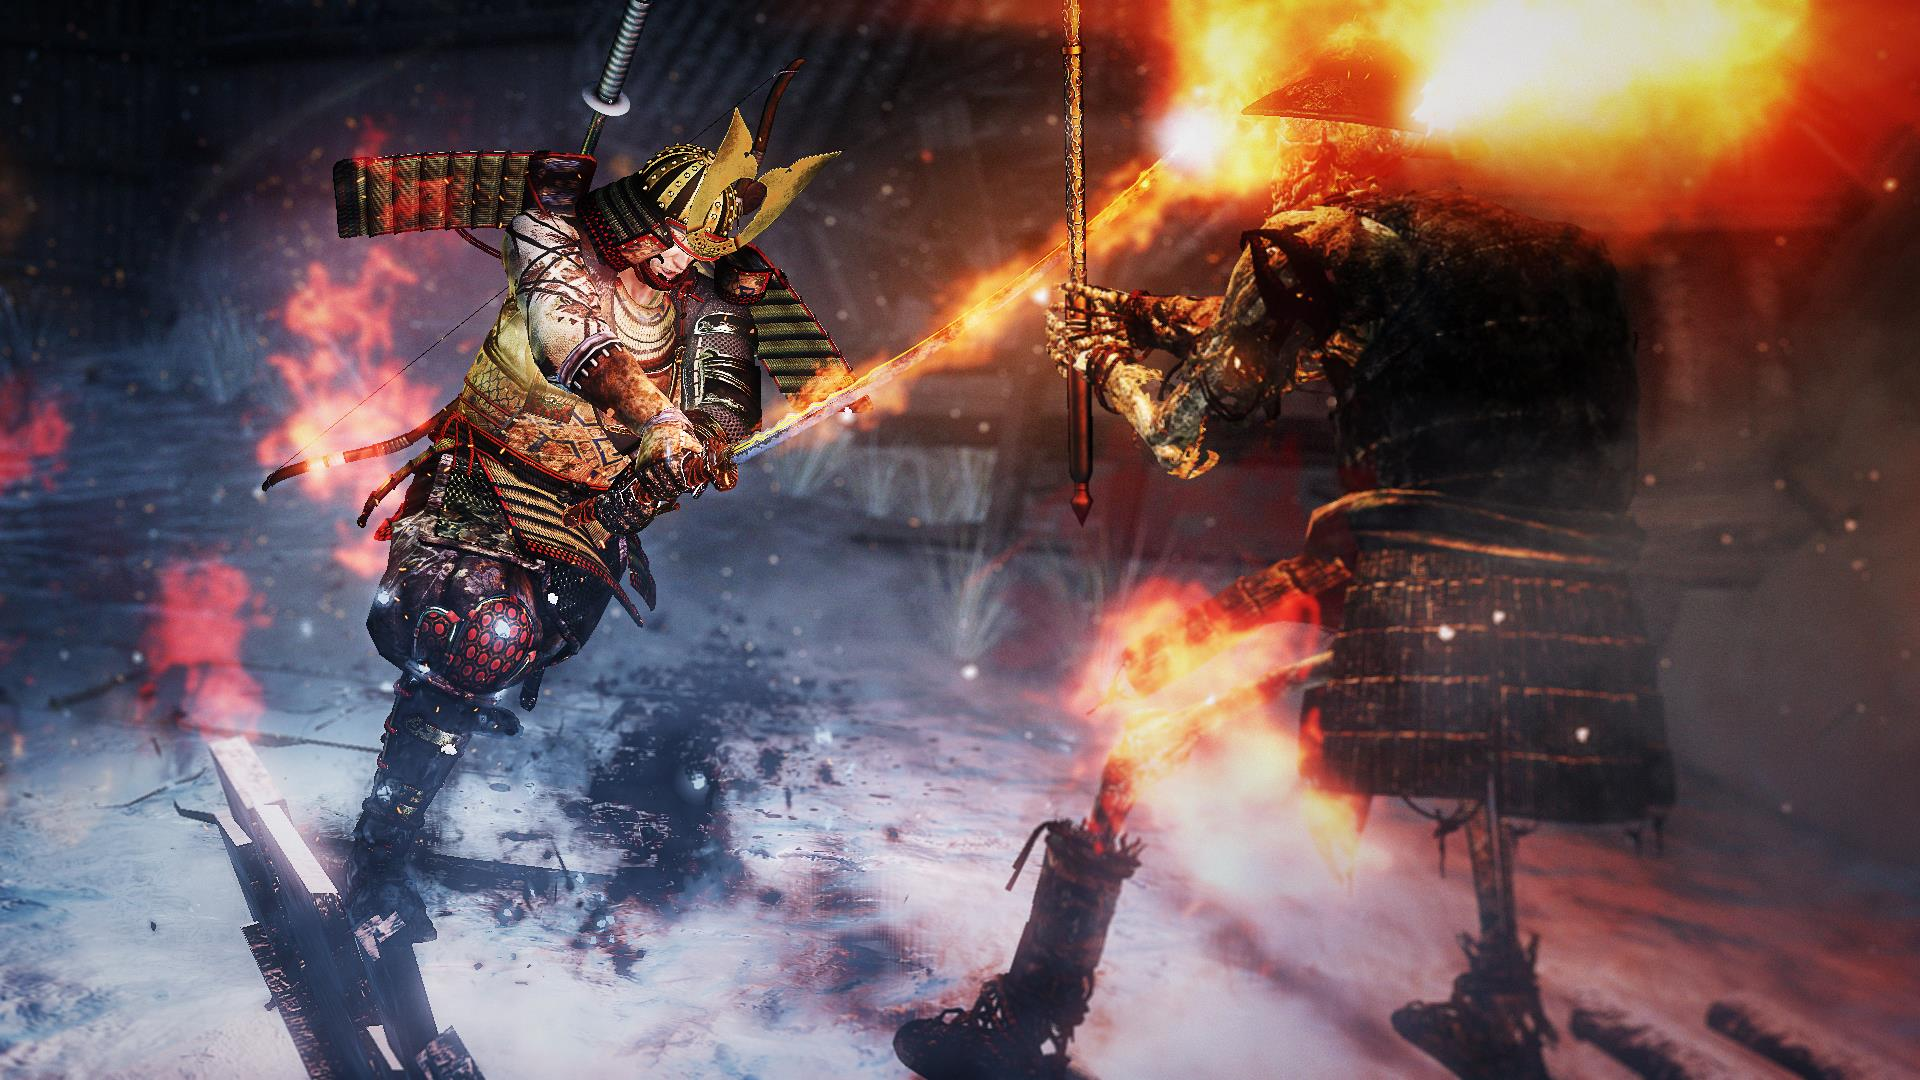 Killzone Shadow Fall Full Hd Wallpaper Nioh To Be Published By Sony In North America And Europe